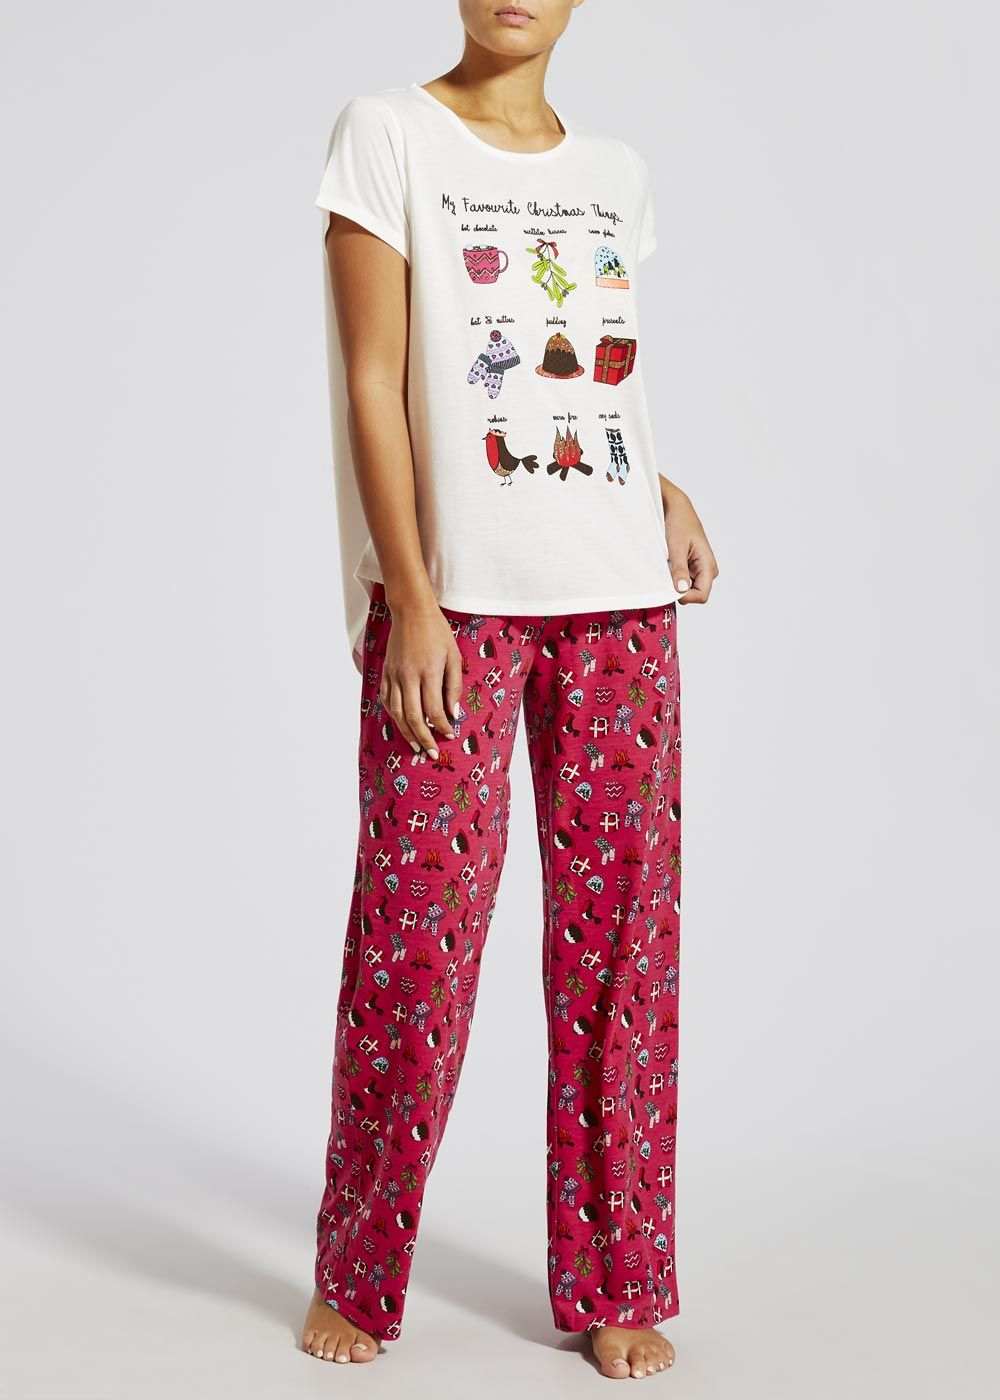 Womens, Mens, Kids & Homeware Online Christmas pajamas